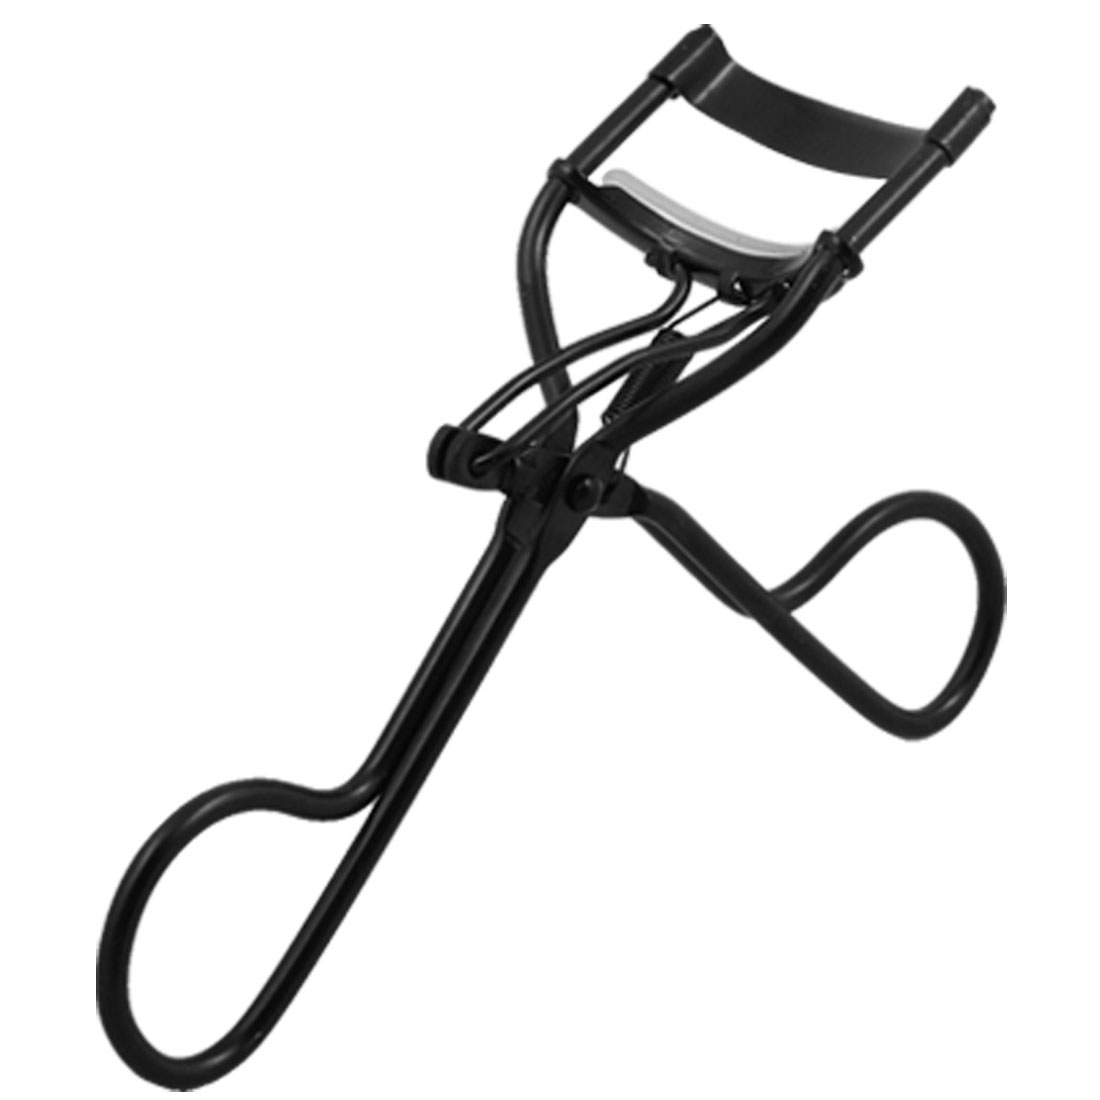 Black Metal Eyelash Eye Lash Makeup Cosmetic Curler